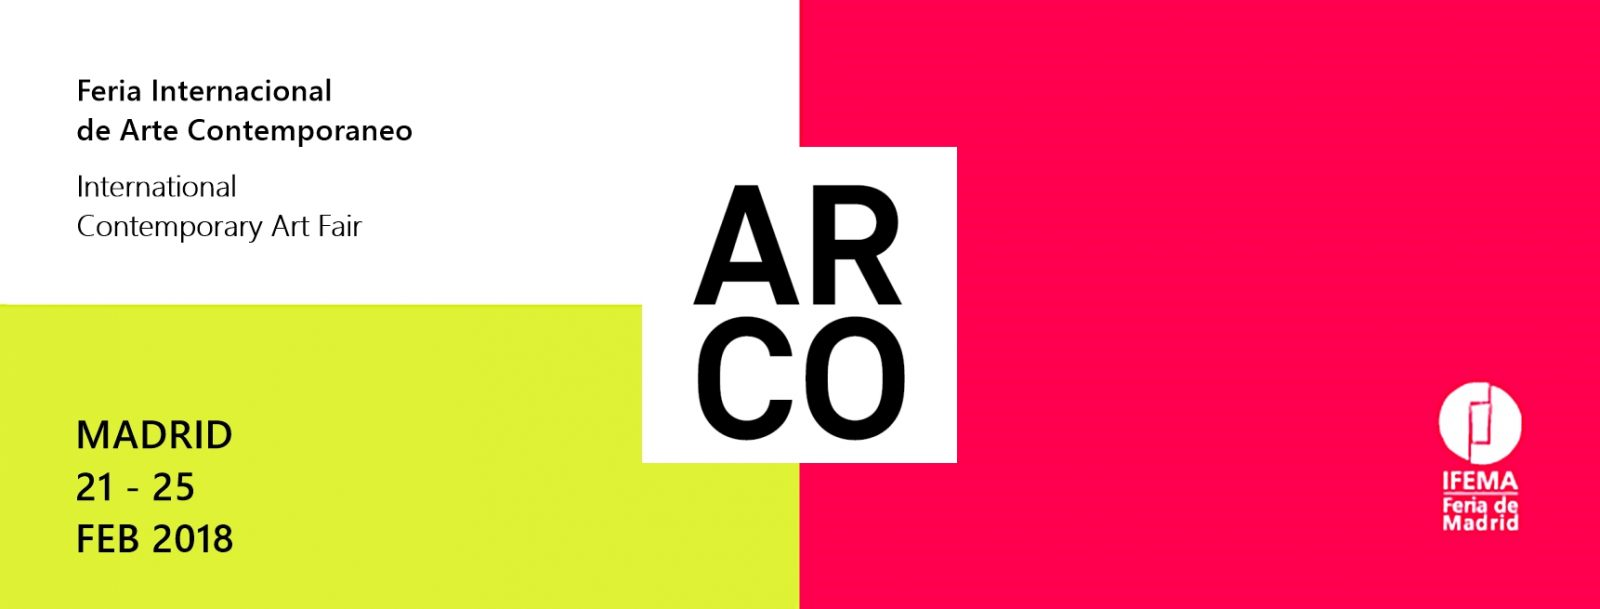 Jamie McCartney will make an Artist Visit to ARCO art fair in Madrid February 2018